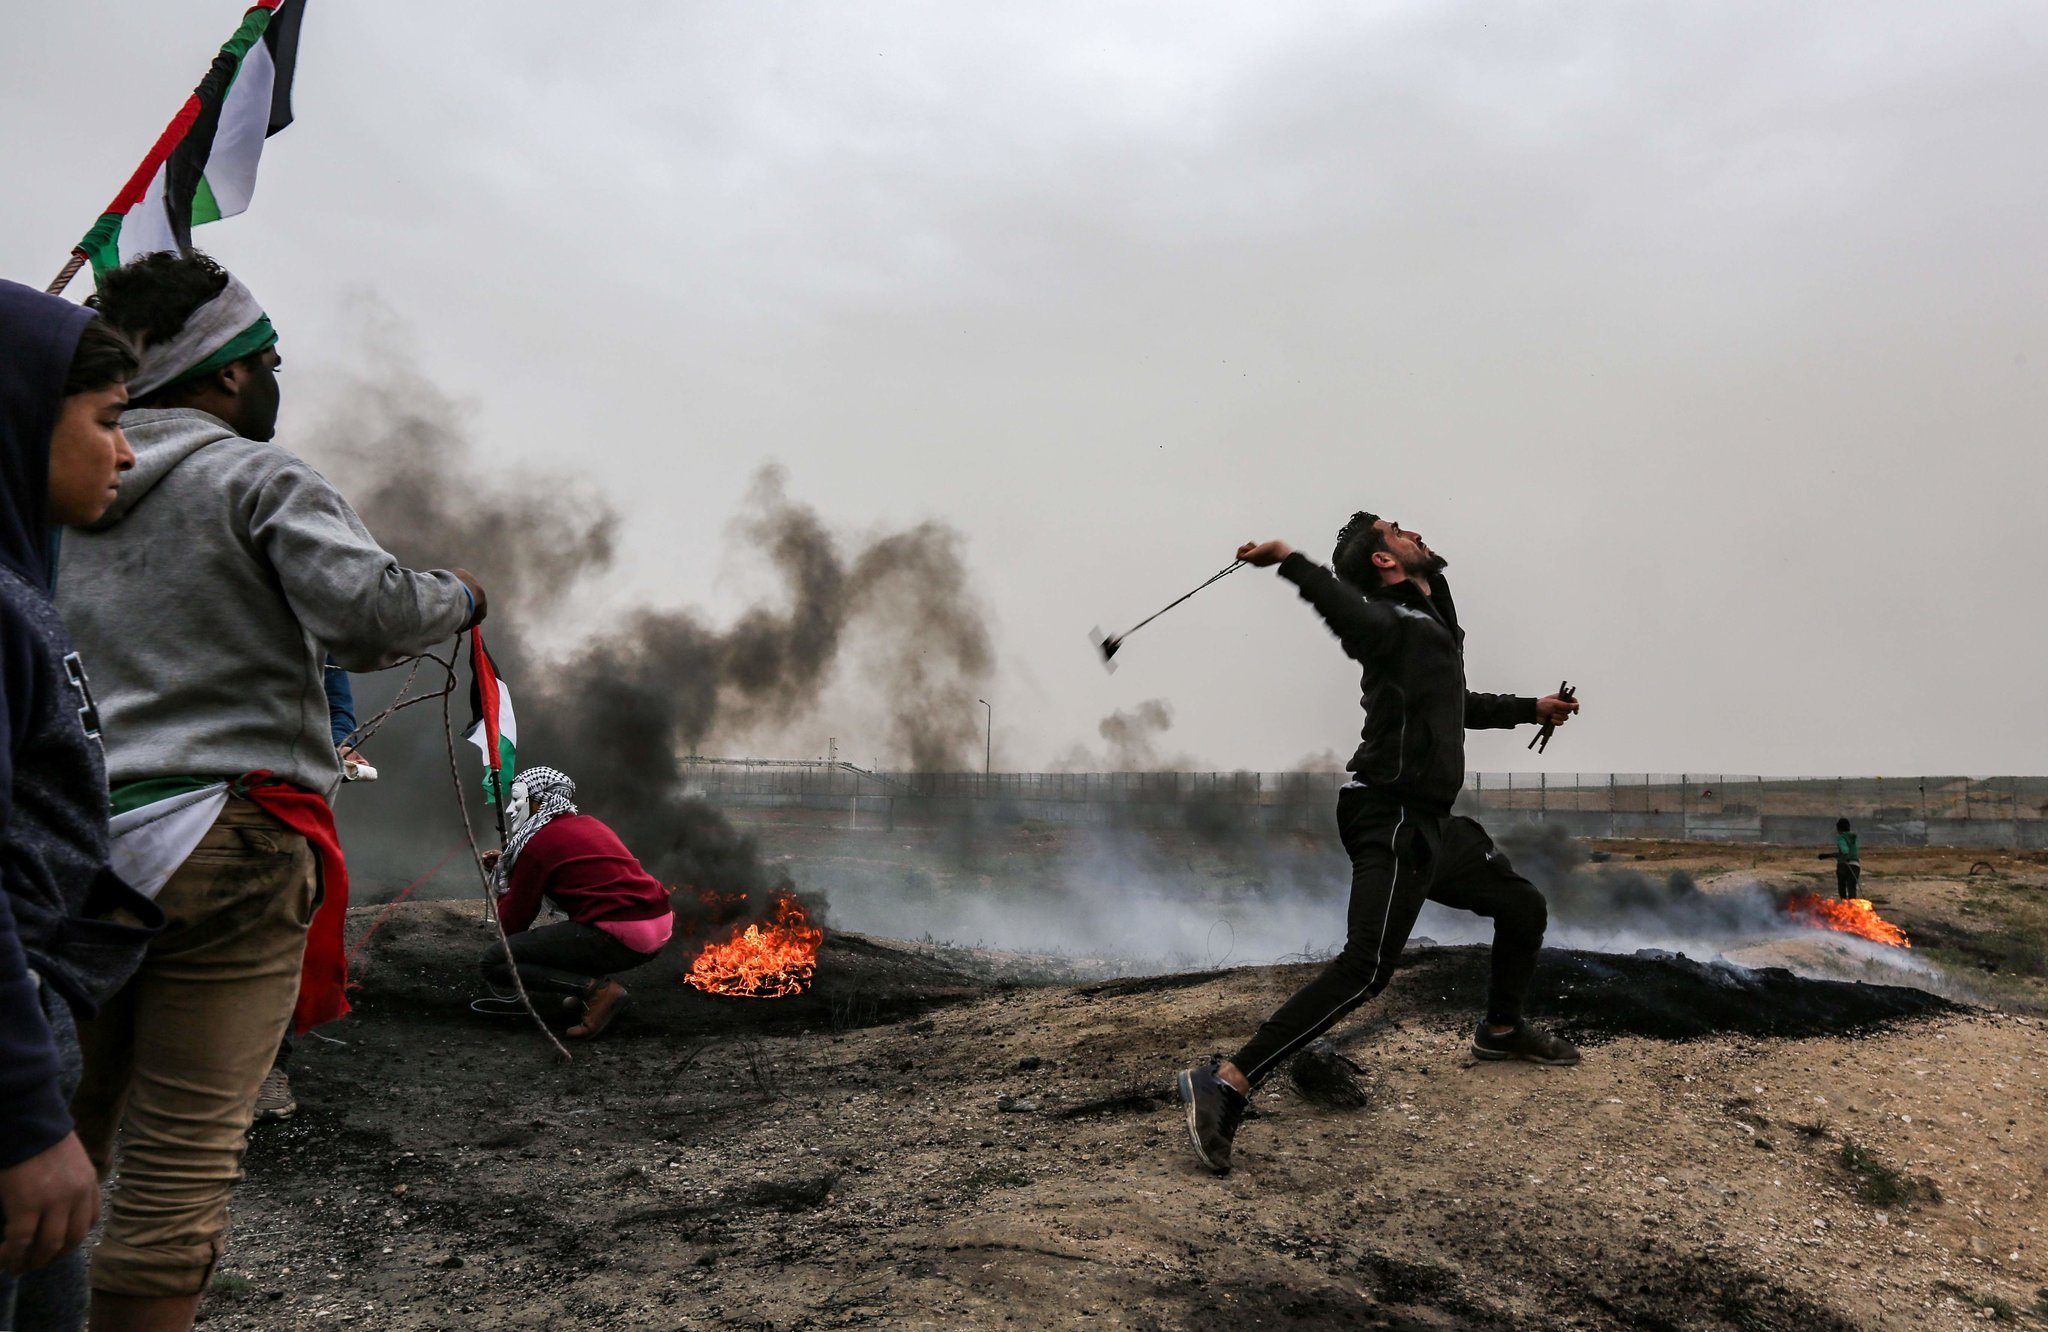 4 killed in clashes with Israeli soldiers in eastern Gaza: medics